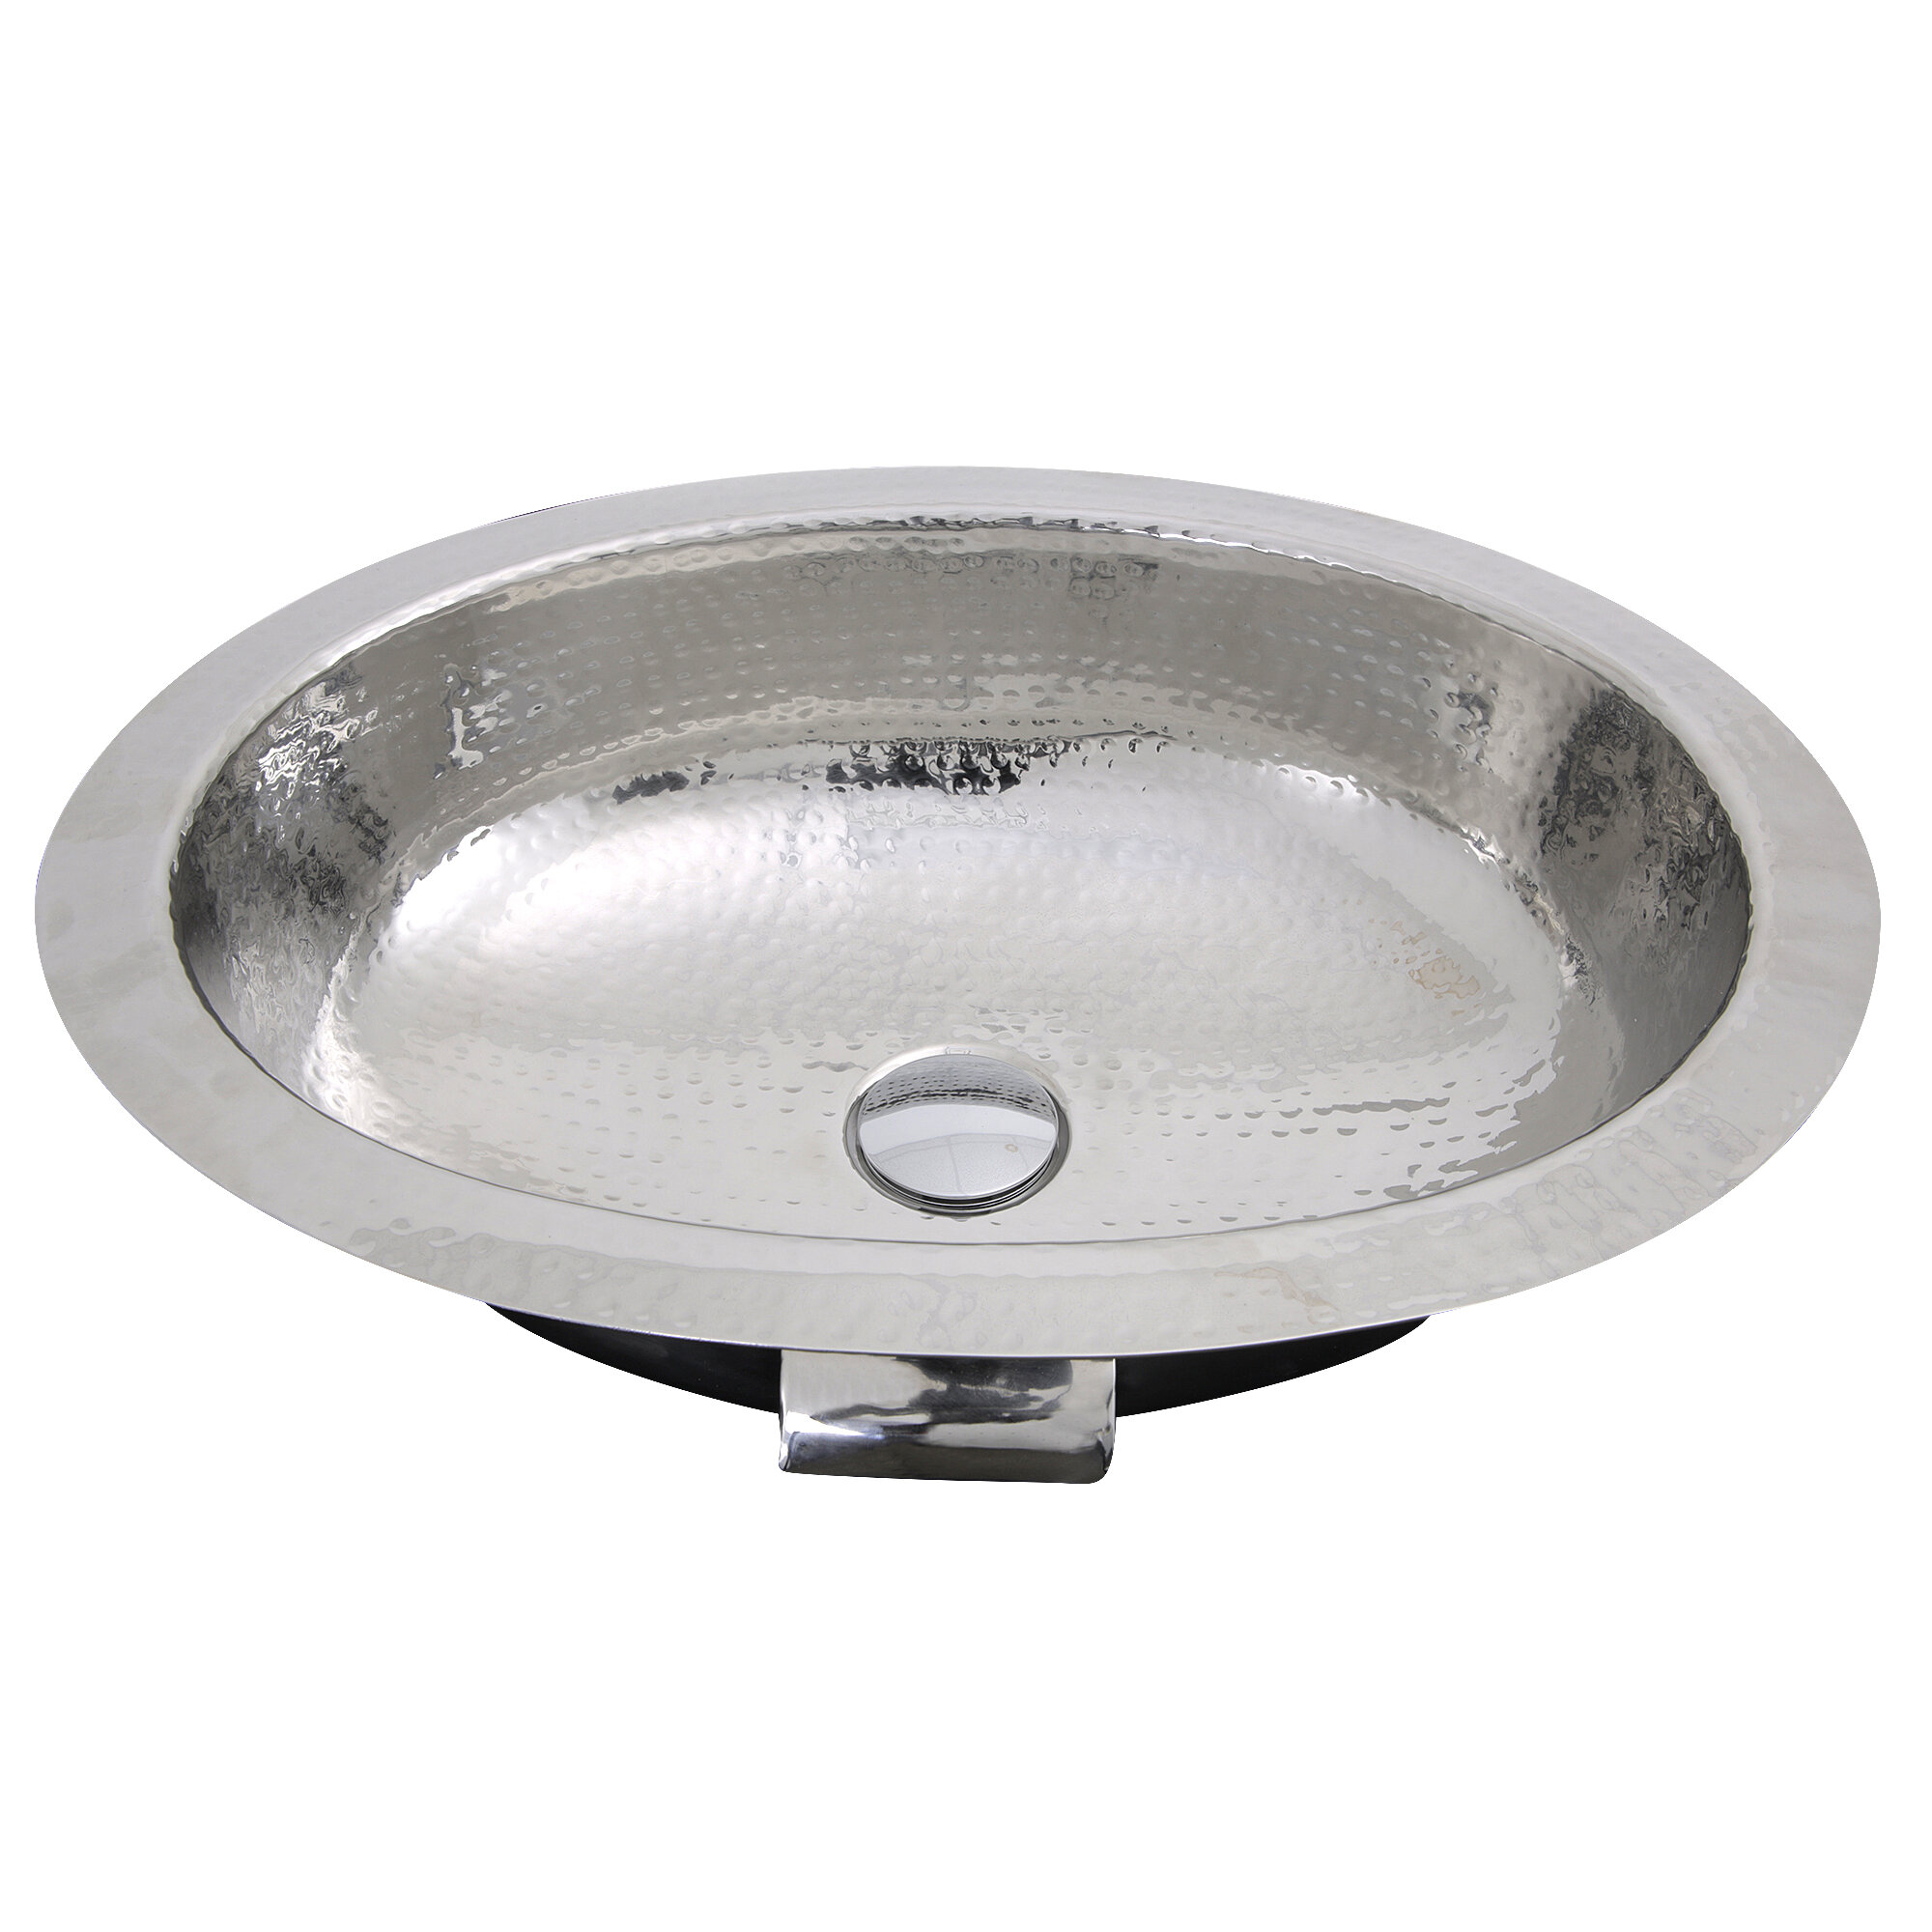 Nantucket Sinks Hand Hammered Stainless Steel Oval Undermount